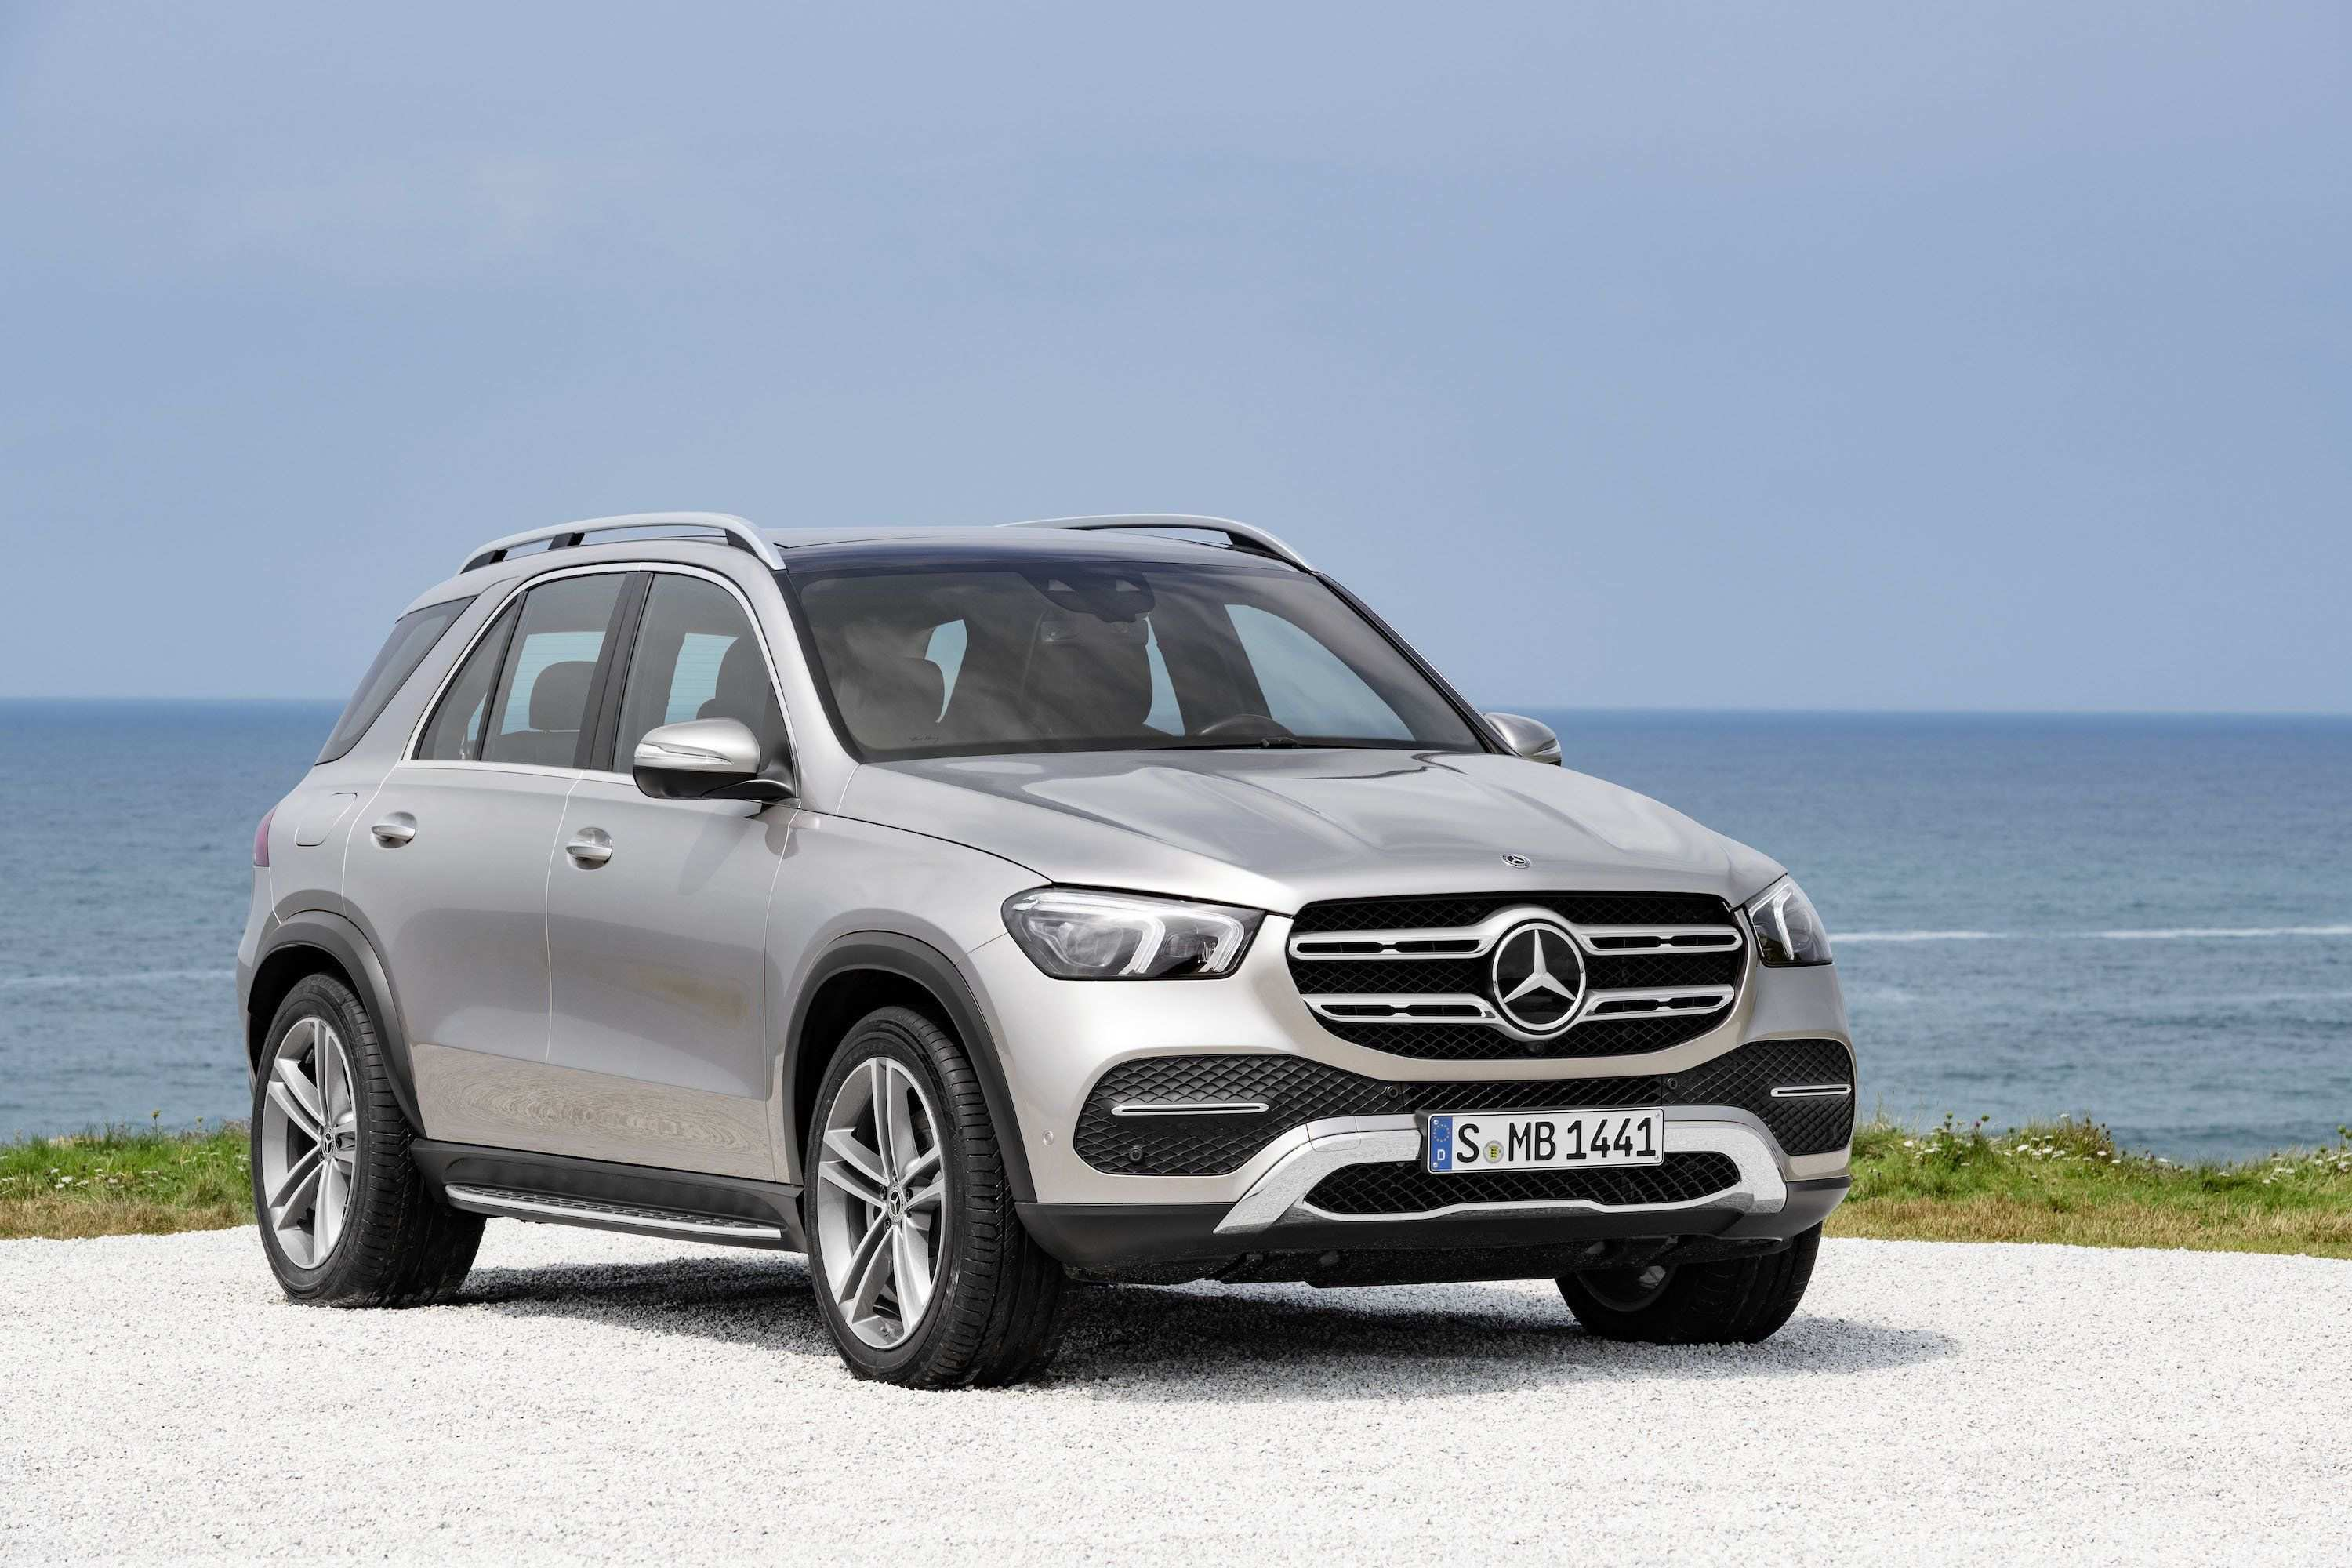 49 All New Mercedes M Class 2020 Specs and Review for Mercedes M Class 2020